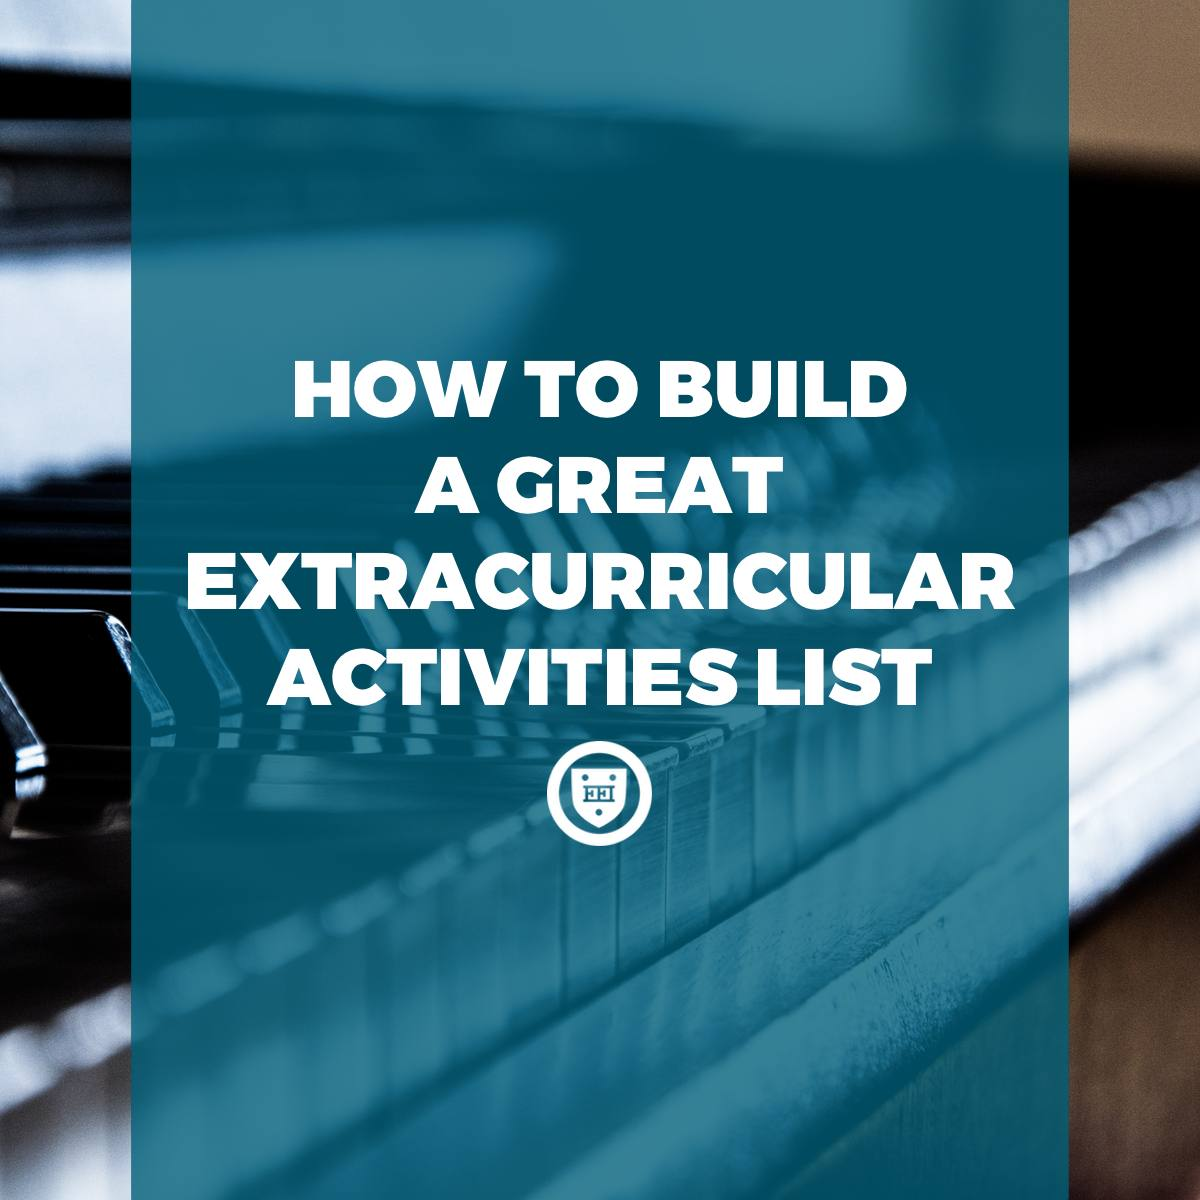 How to Build a Great Extracurricular Activities List